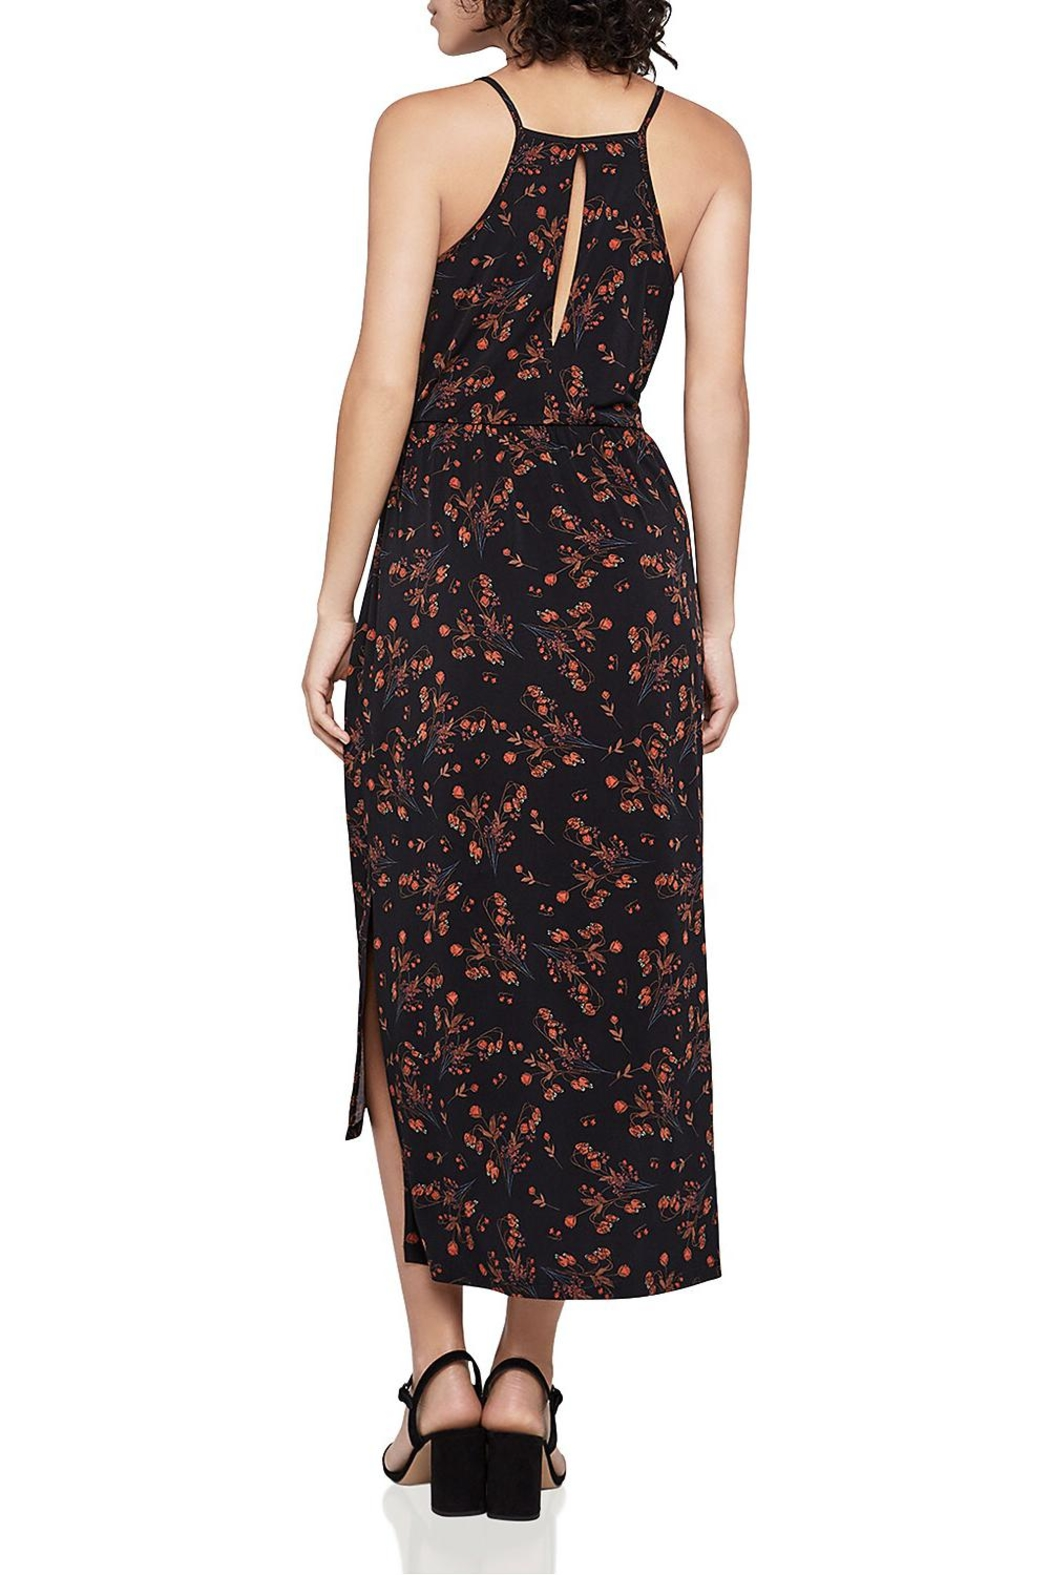 BCBGeneration Faux-Wrap Midi Dress - Front Full Image